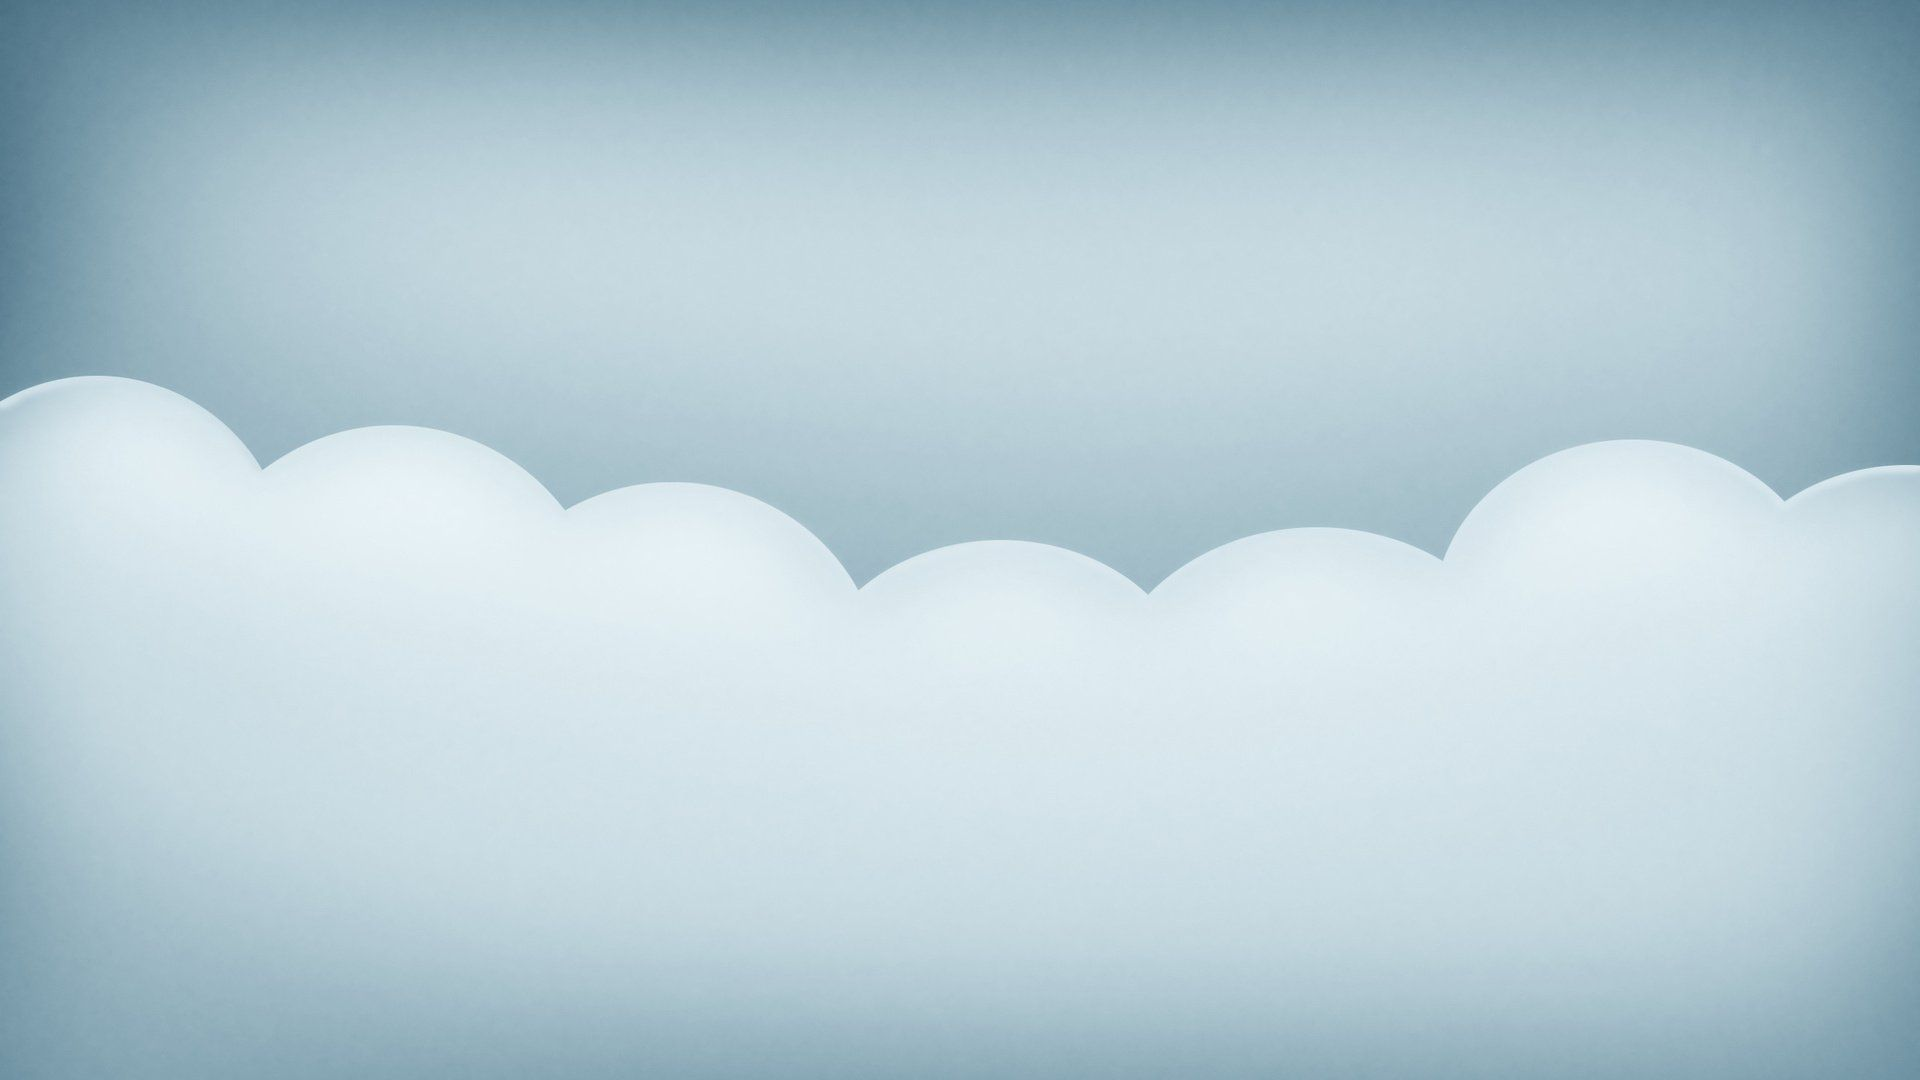 Sky Vector picture hd